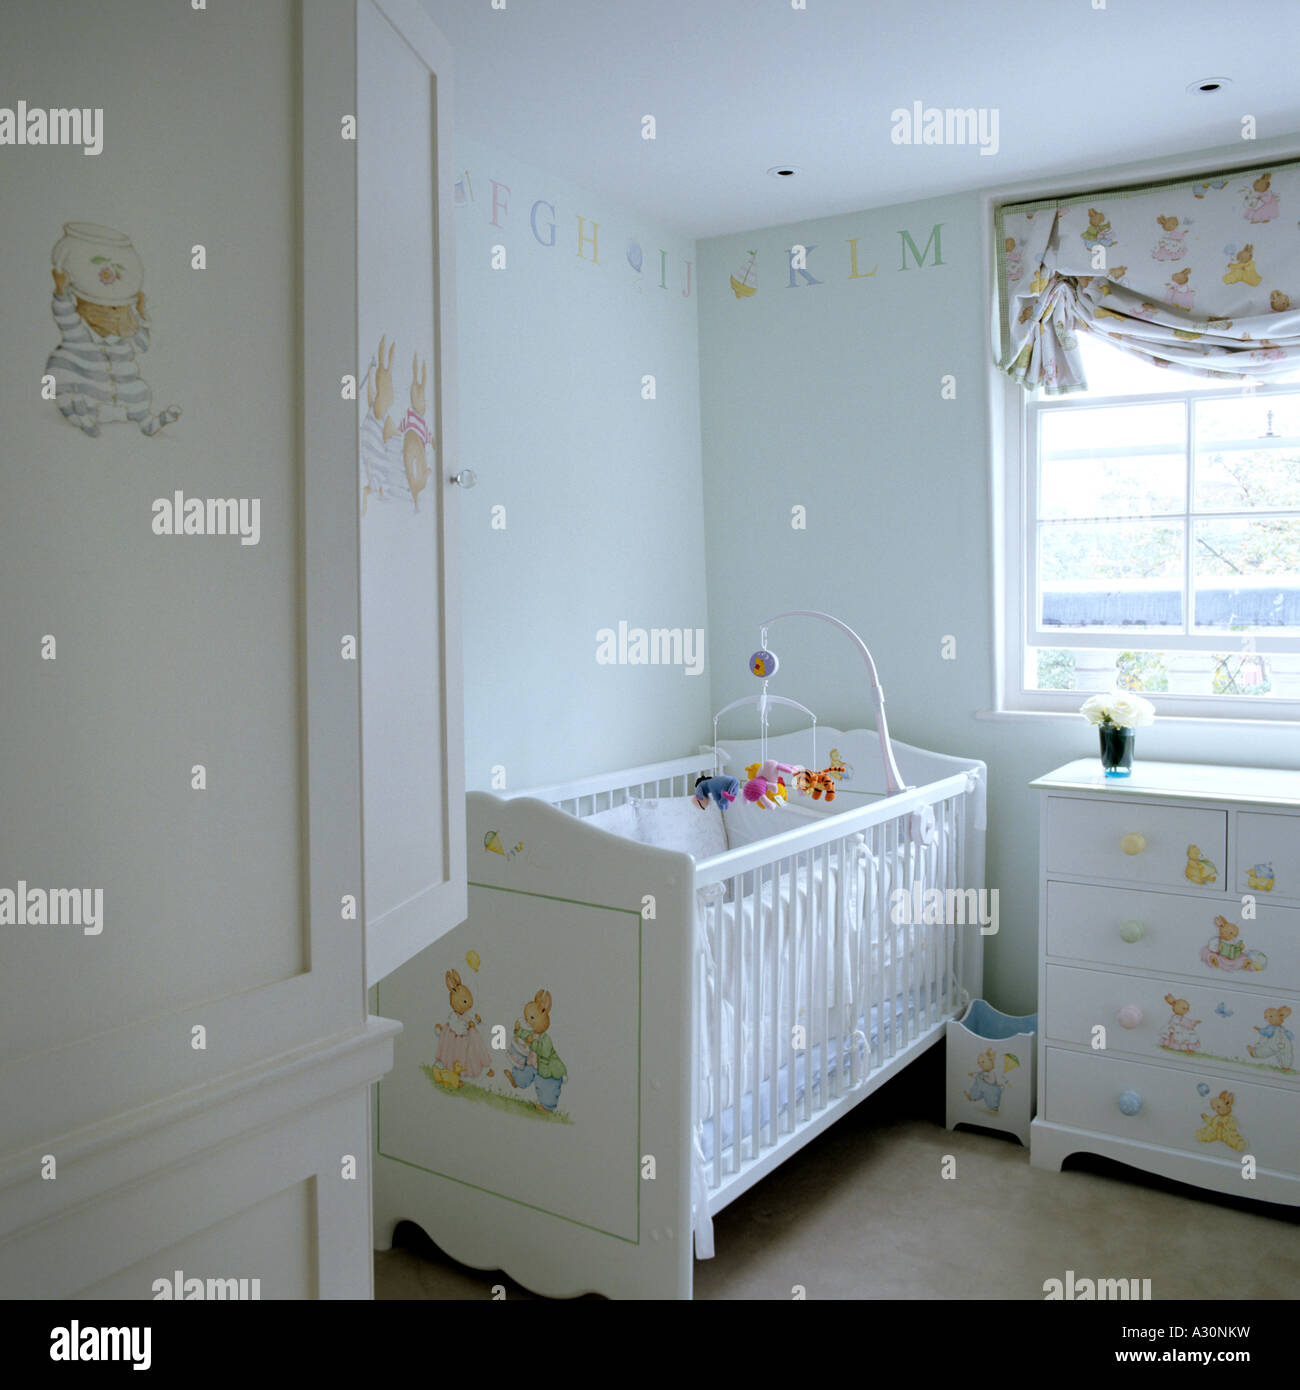 Cot in a child's nursery with Beatrix potter decoration - Stock Image